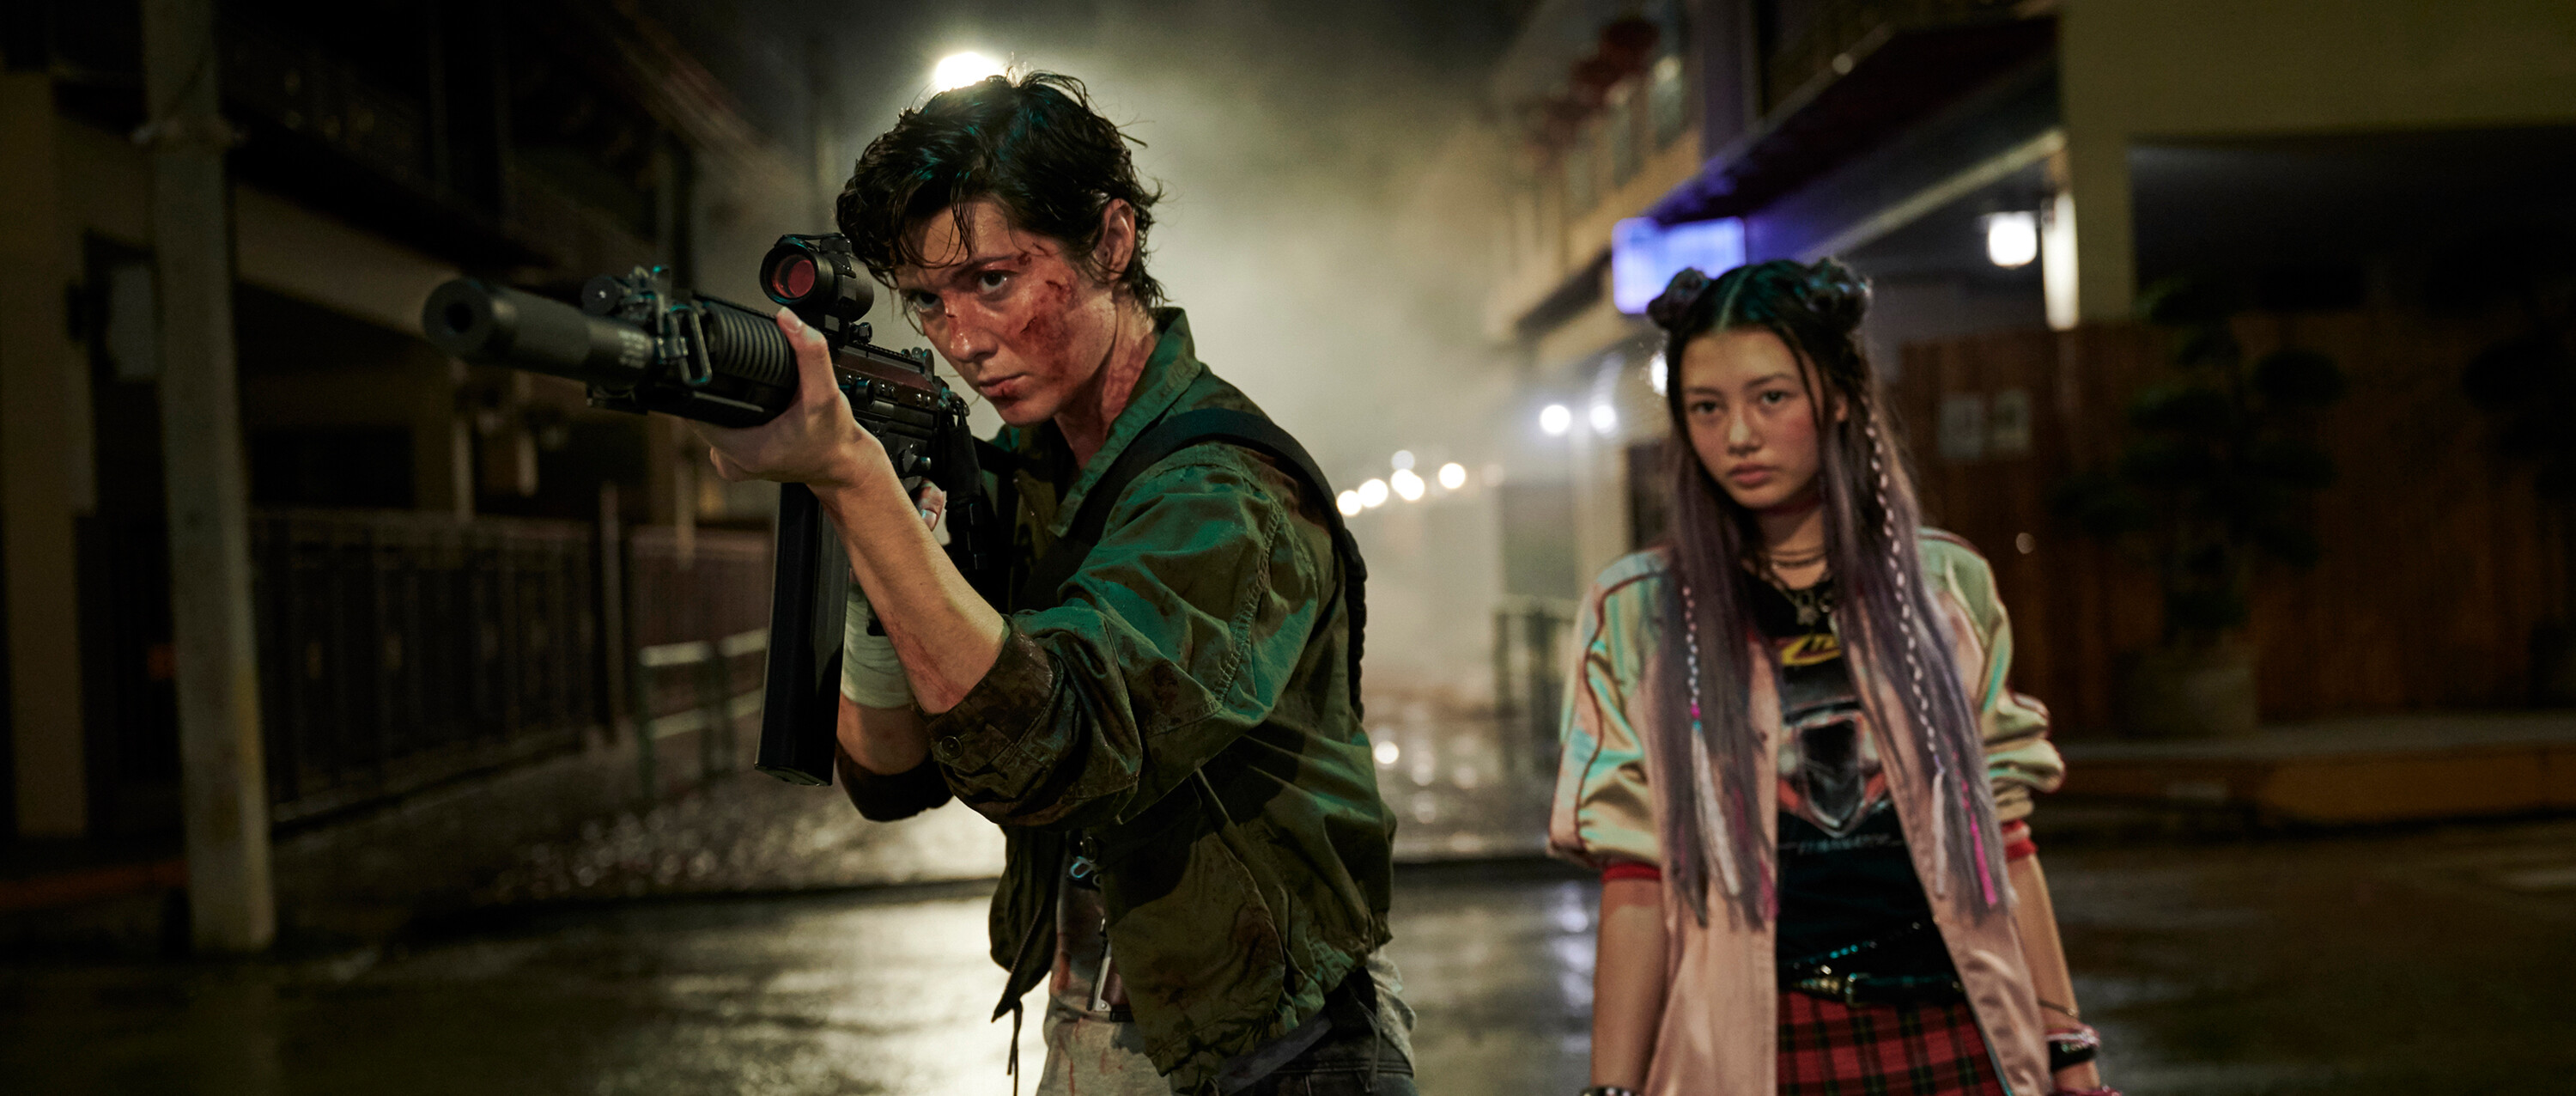 'Kate' fires off a Netflix action movie that looks D.O.A. in more ways than one